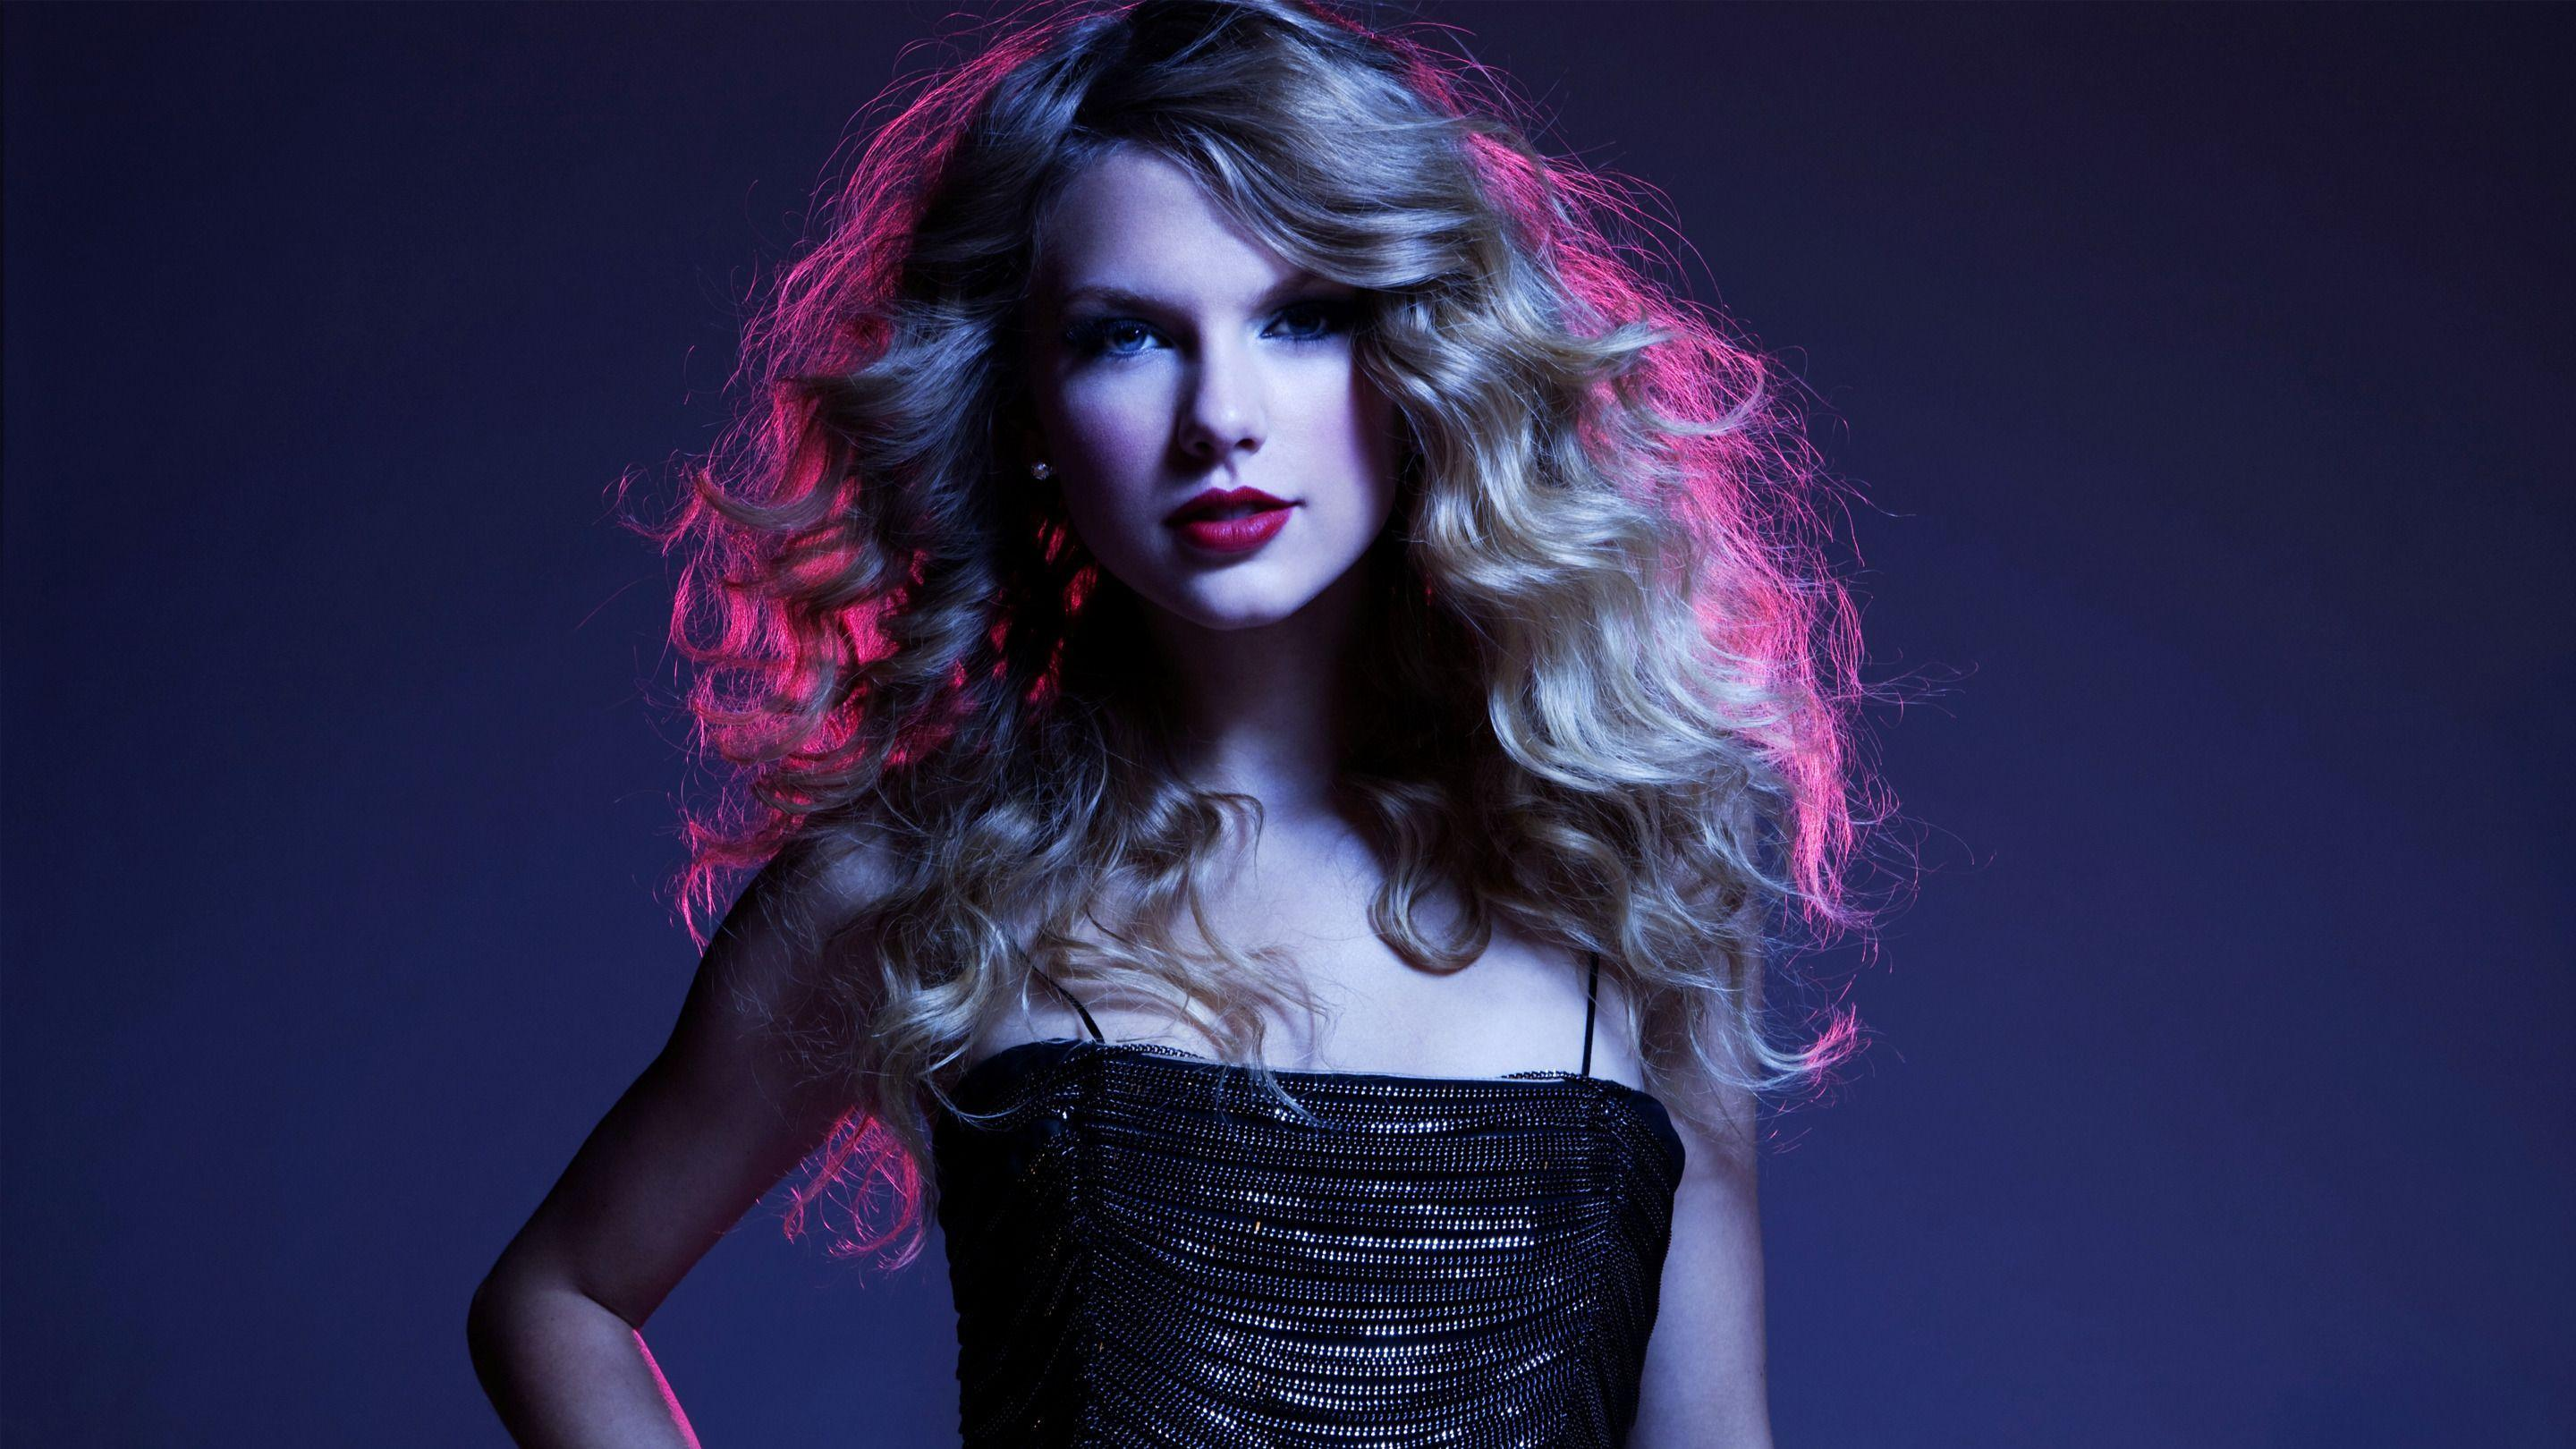 Taylor Swift 2017 Wallpapers 2880x1620